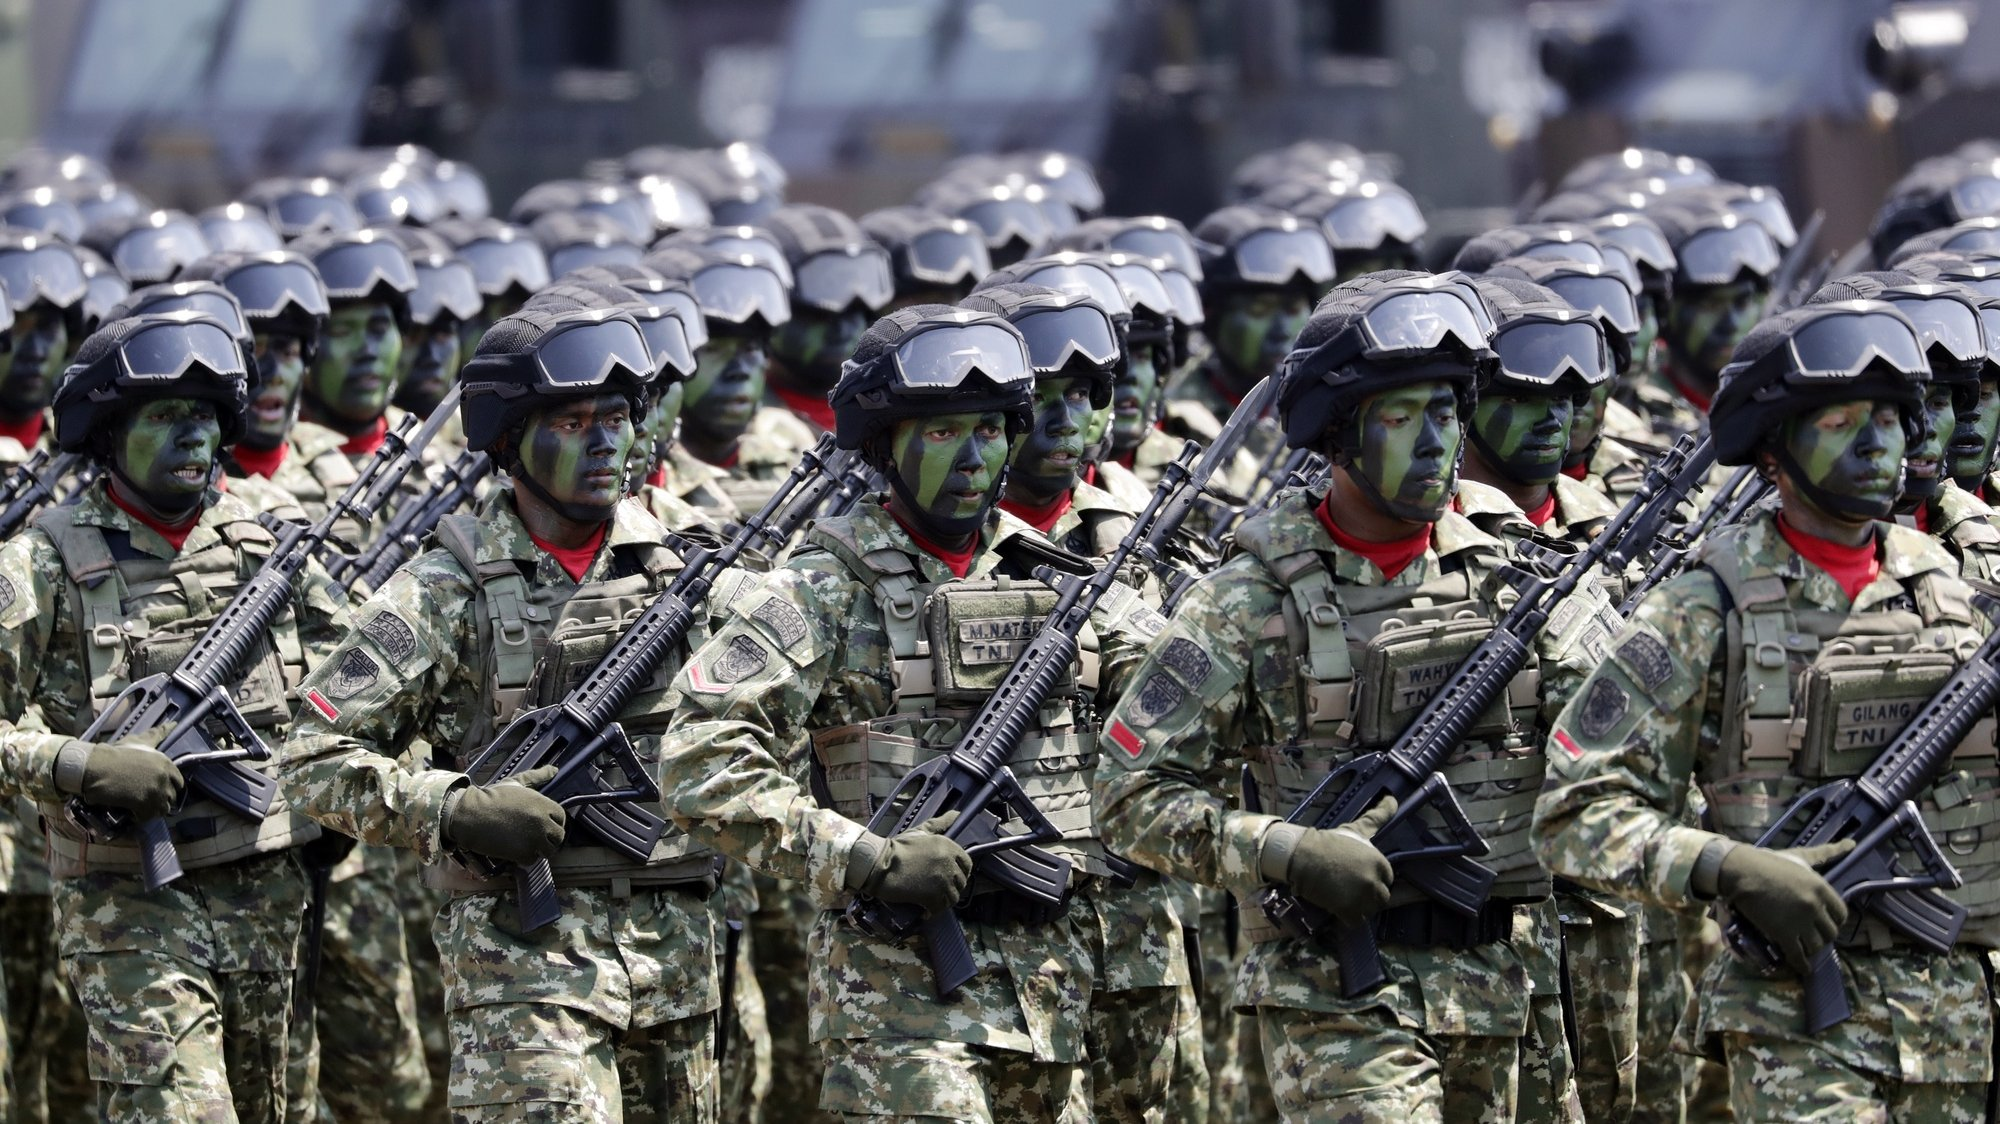 epa07897179 Indonesian Army soldiers march during a ceremony to mark the 74th Indonesian National Armed Forces Day, at Halim Perdanakusuma Air Force Base in Jakarta, Indonesia, 05 October 2019.  EPA/MAST IRHAM